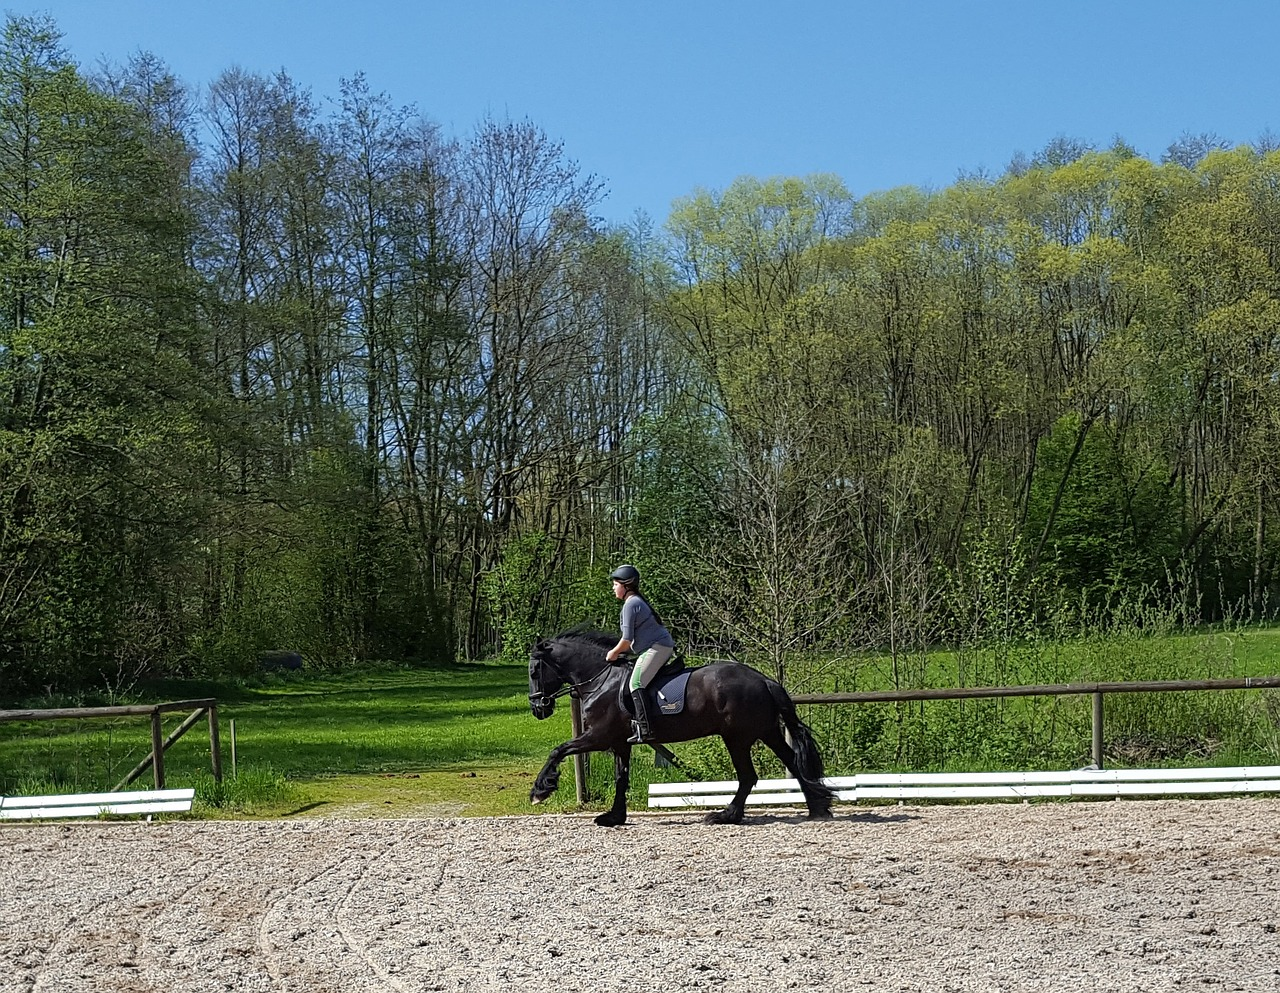 friese horsewoman gallop free photo